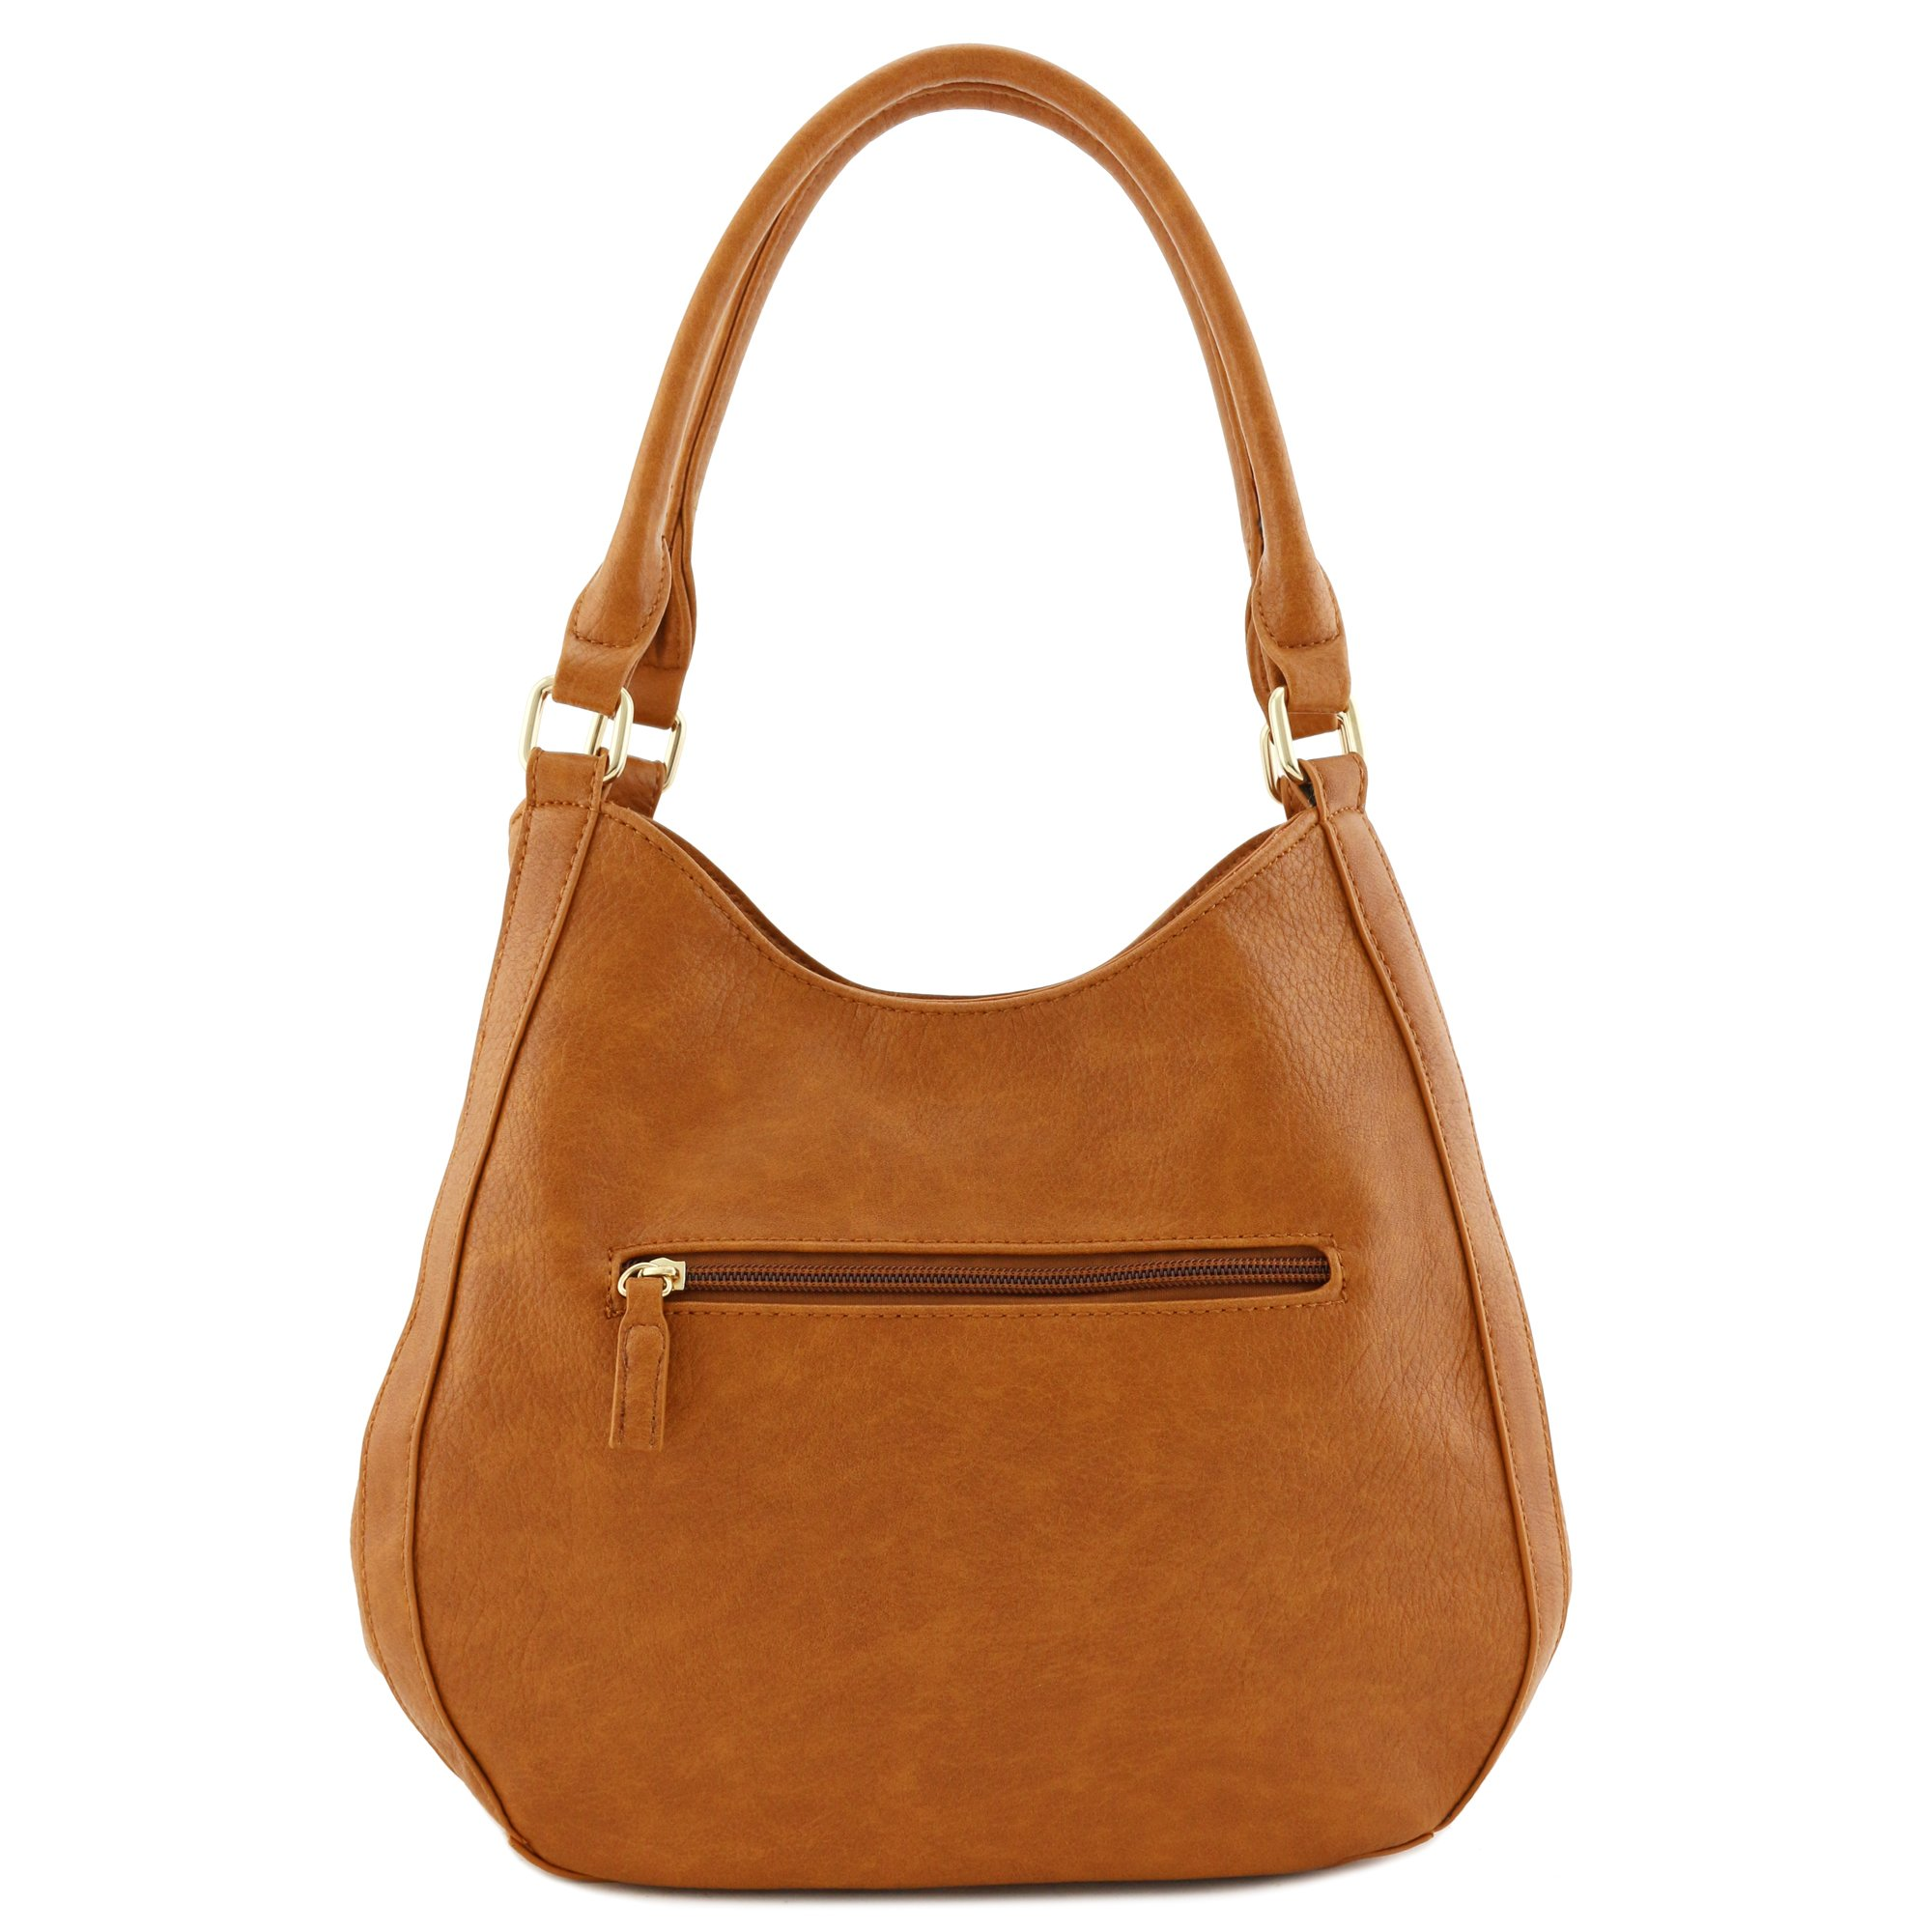 Light-weight 3 Compartment Faux Leather Medium Hobo Bag Tan by FashionPuzzle (Image #5)